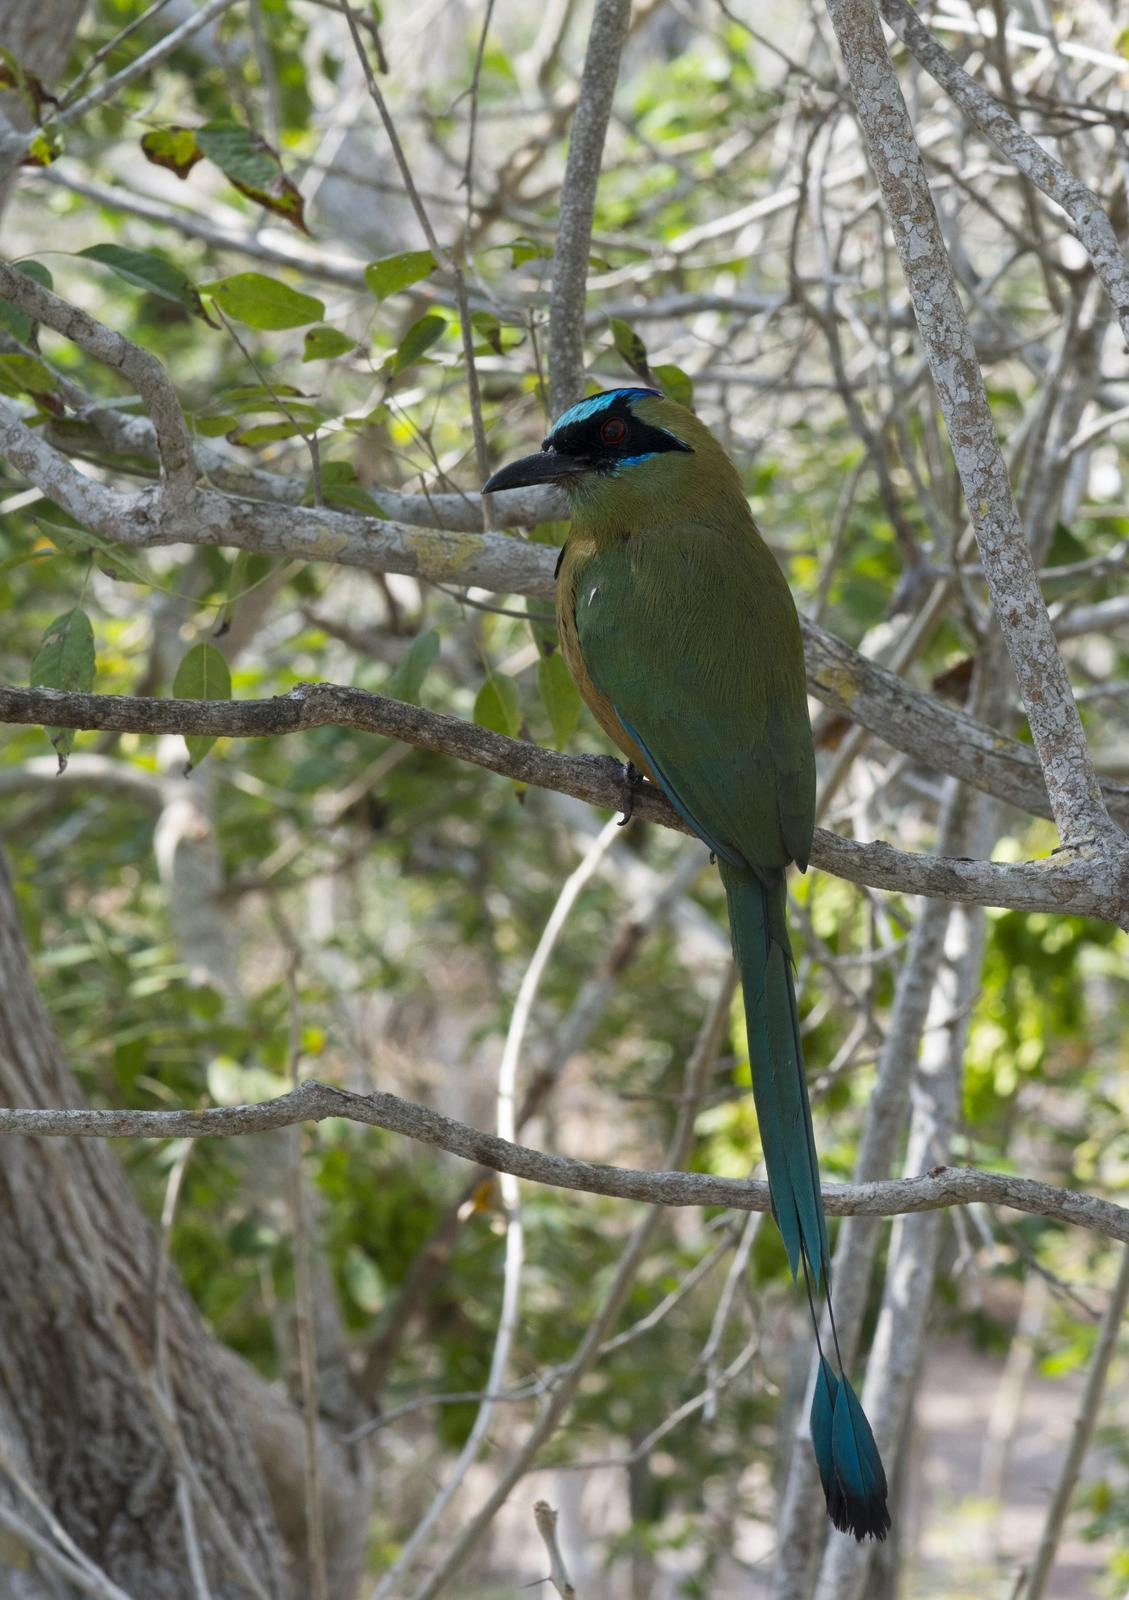 Whooping Motmot Photo by Jacob Zadik